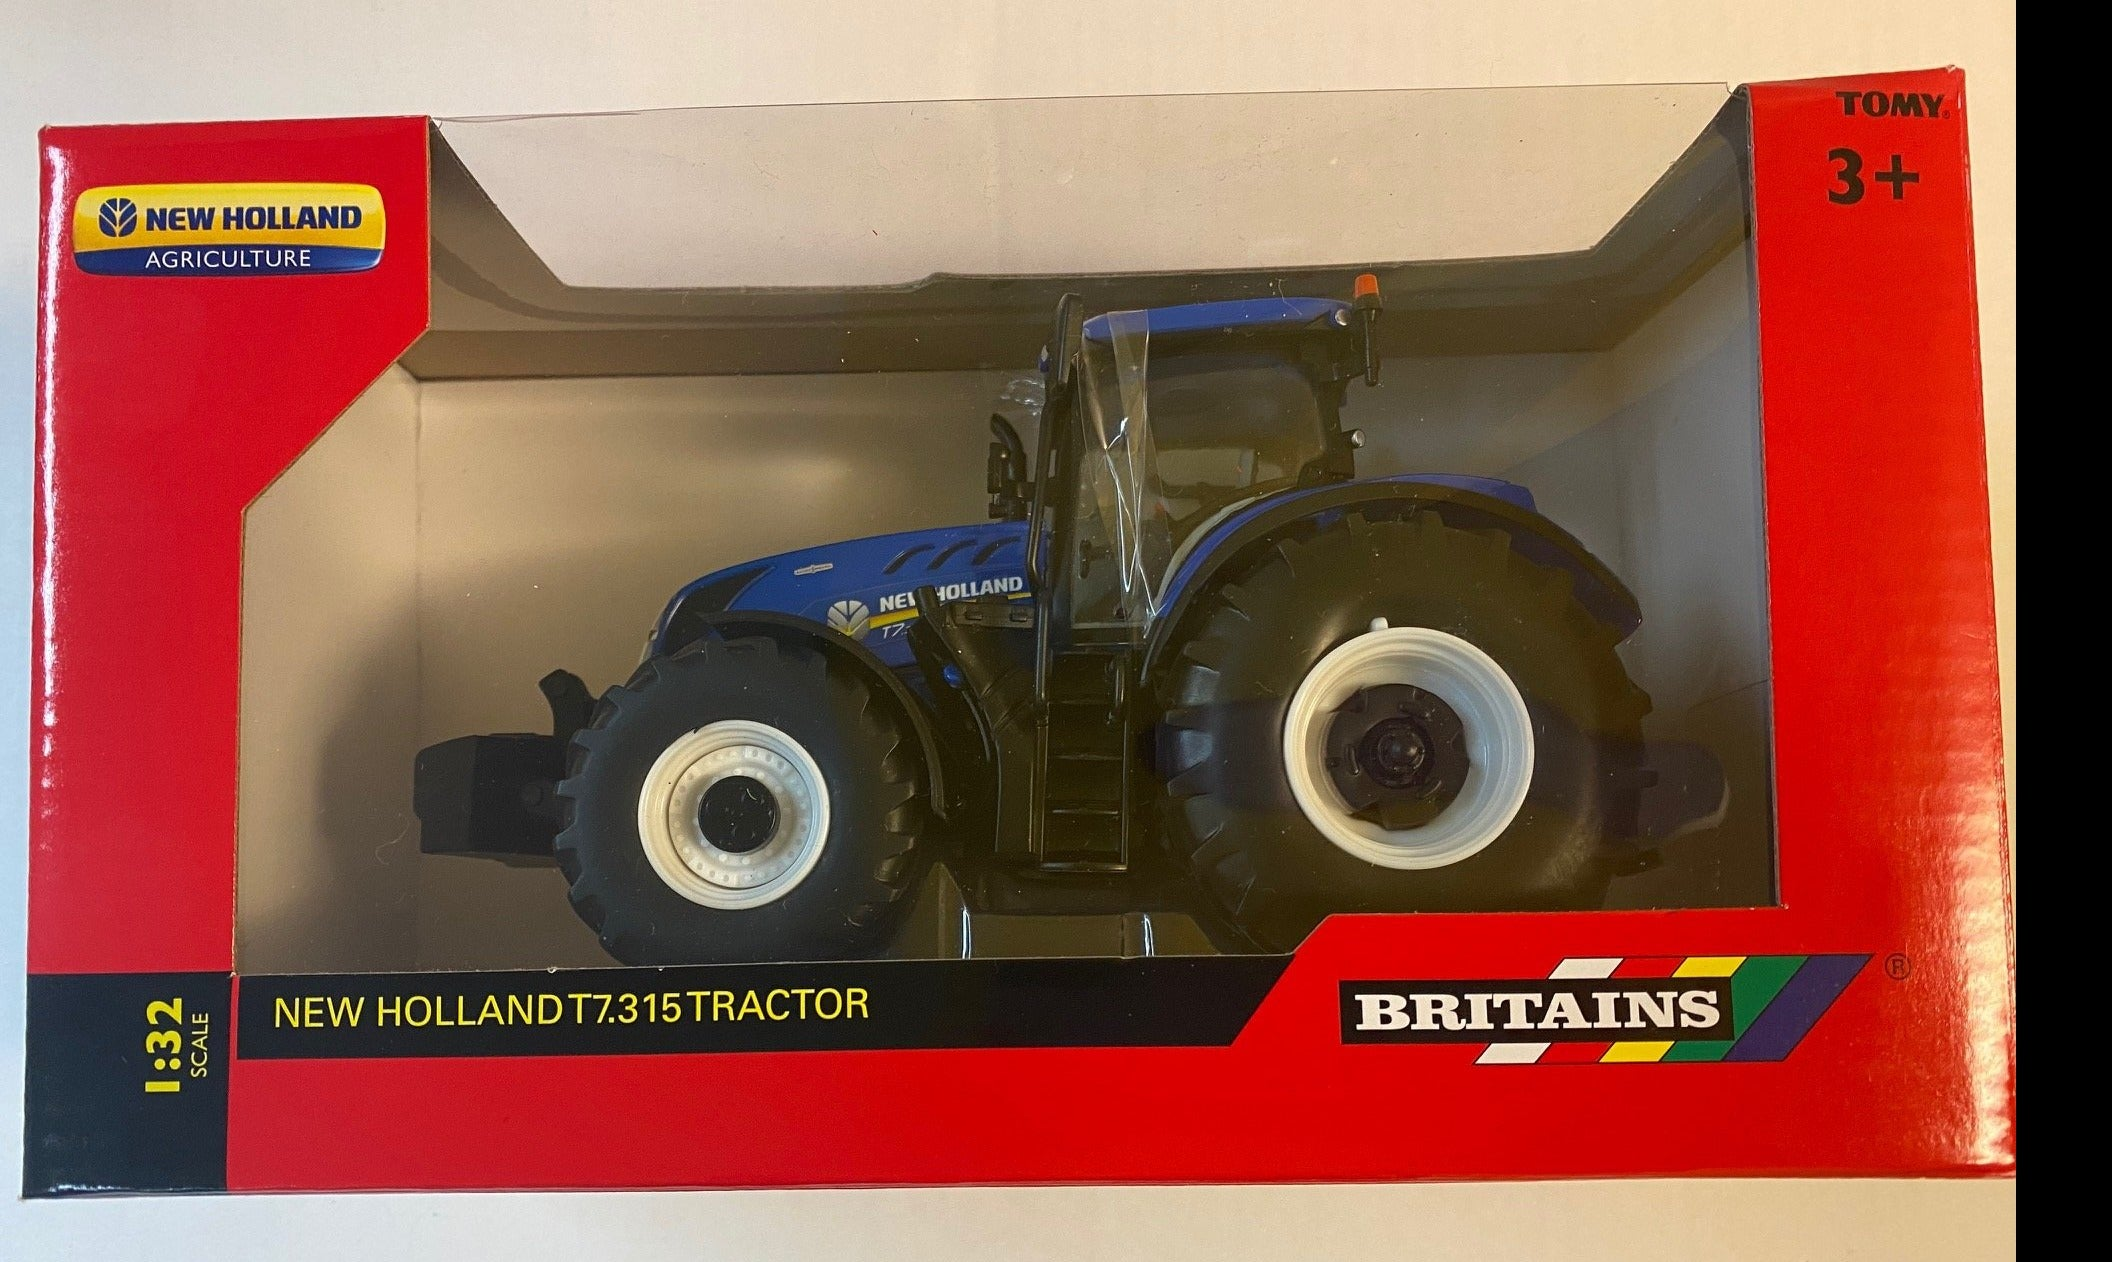 43149A1 BRITAINS NEW HOLLAND T7.315 TRACTOR